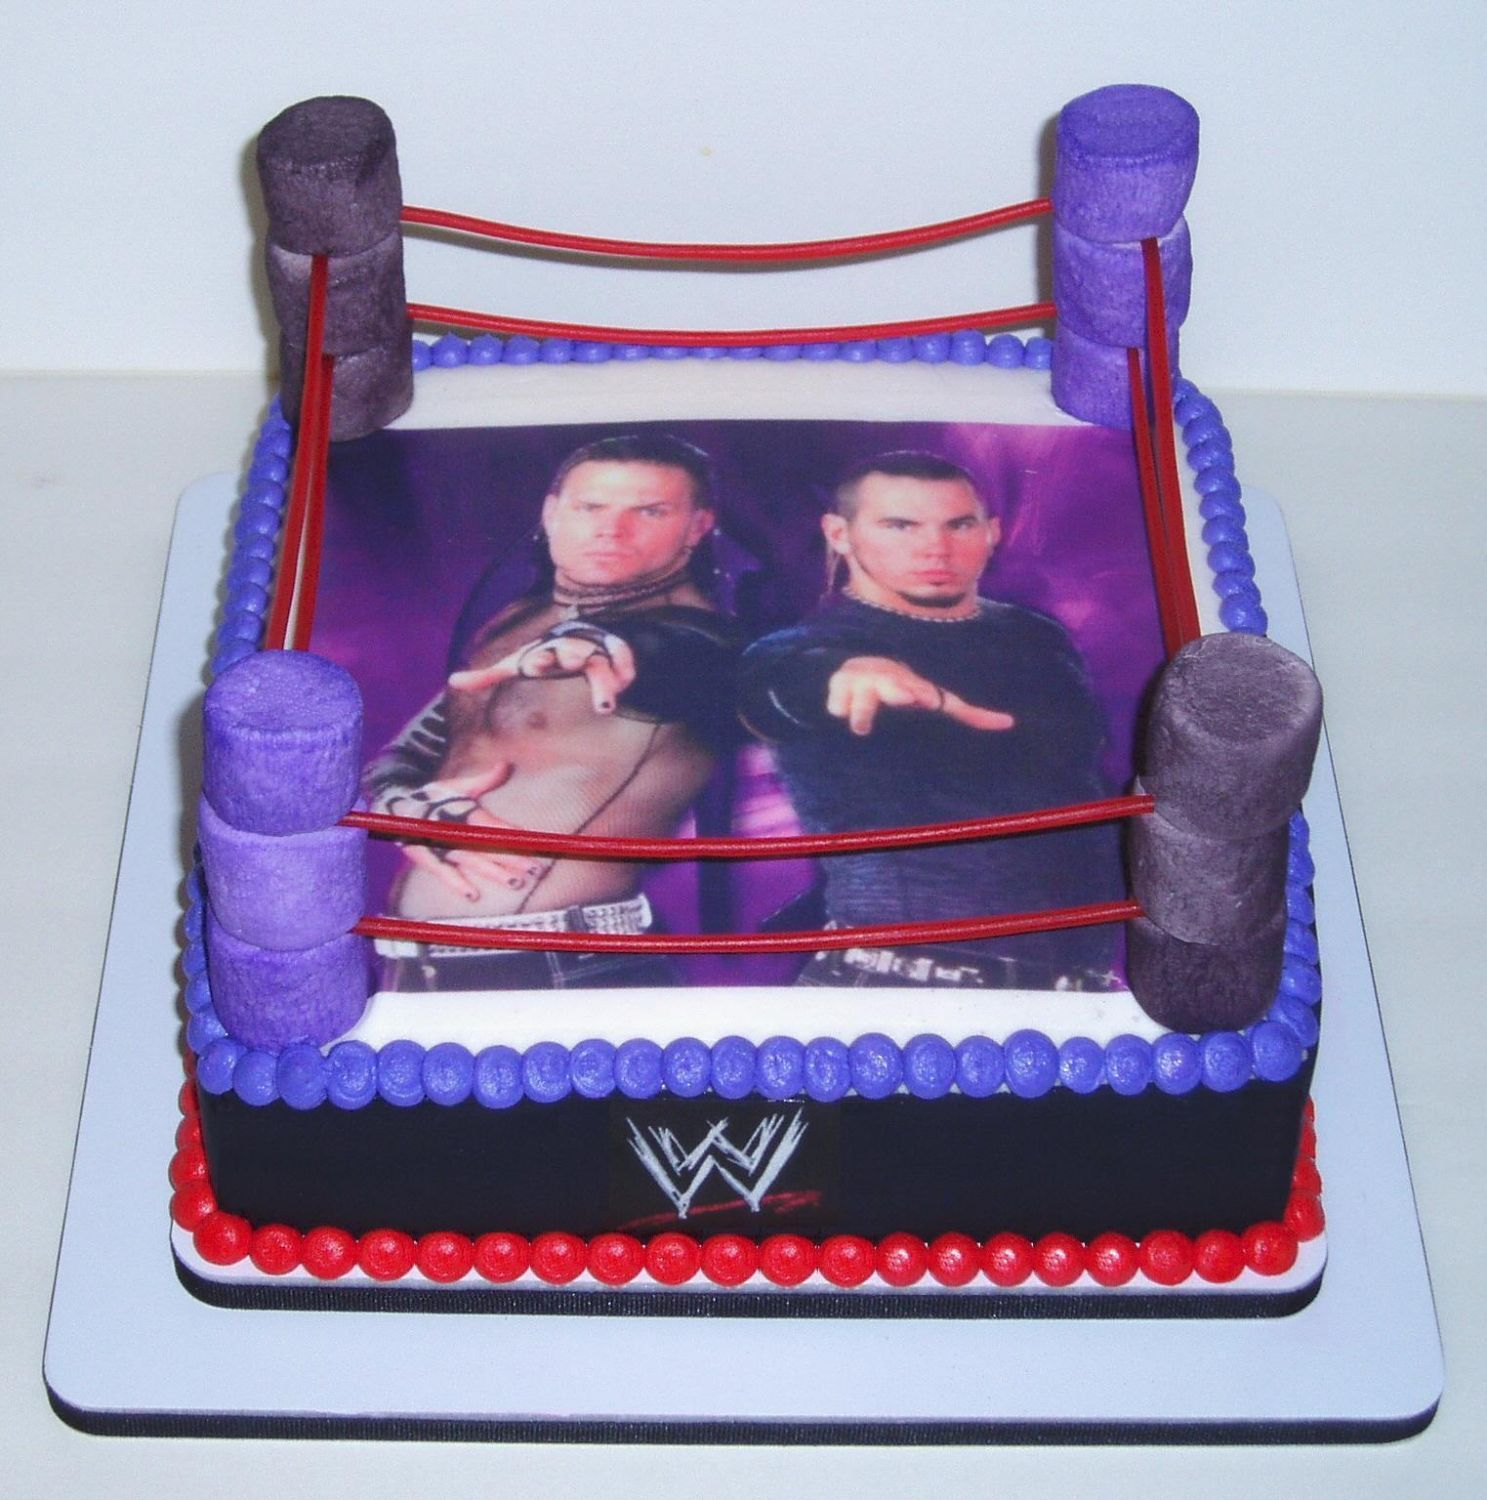 Made this for my nephew who is a huge fan of WWE and the Hardy